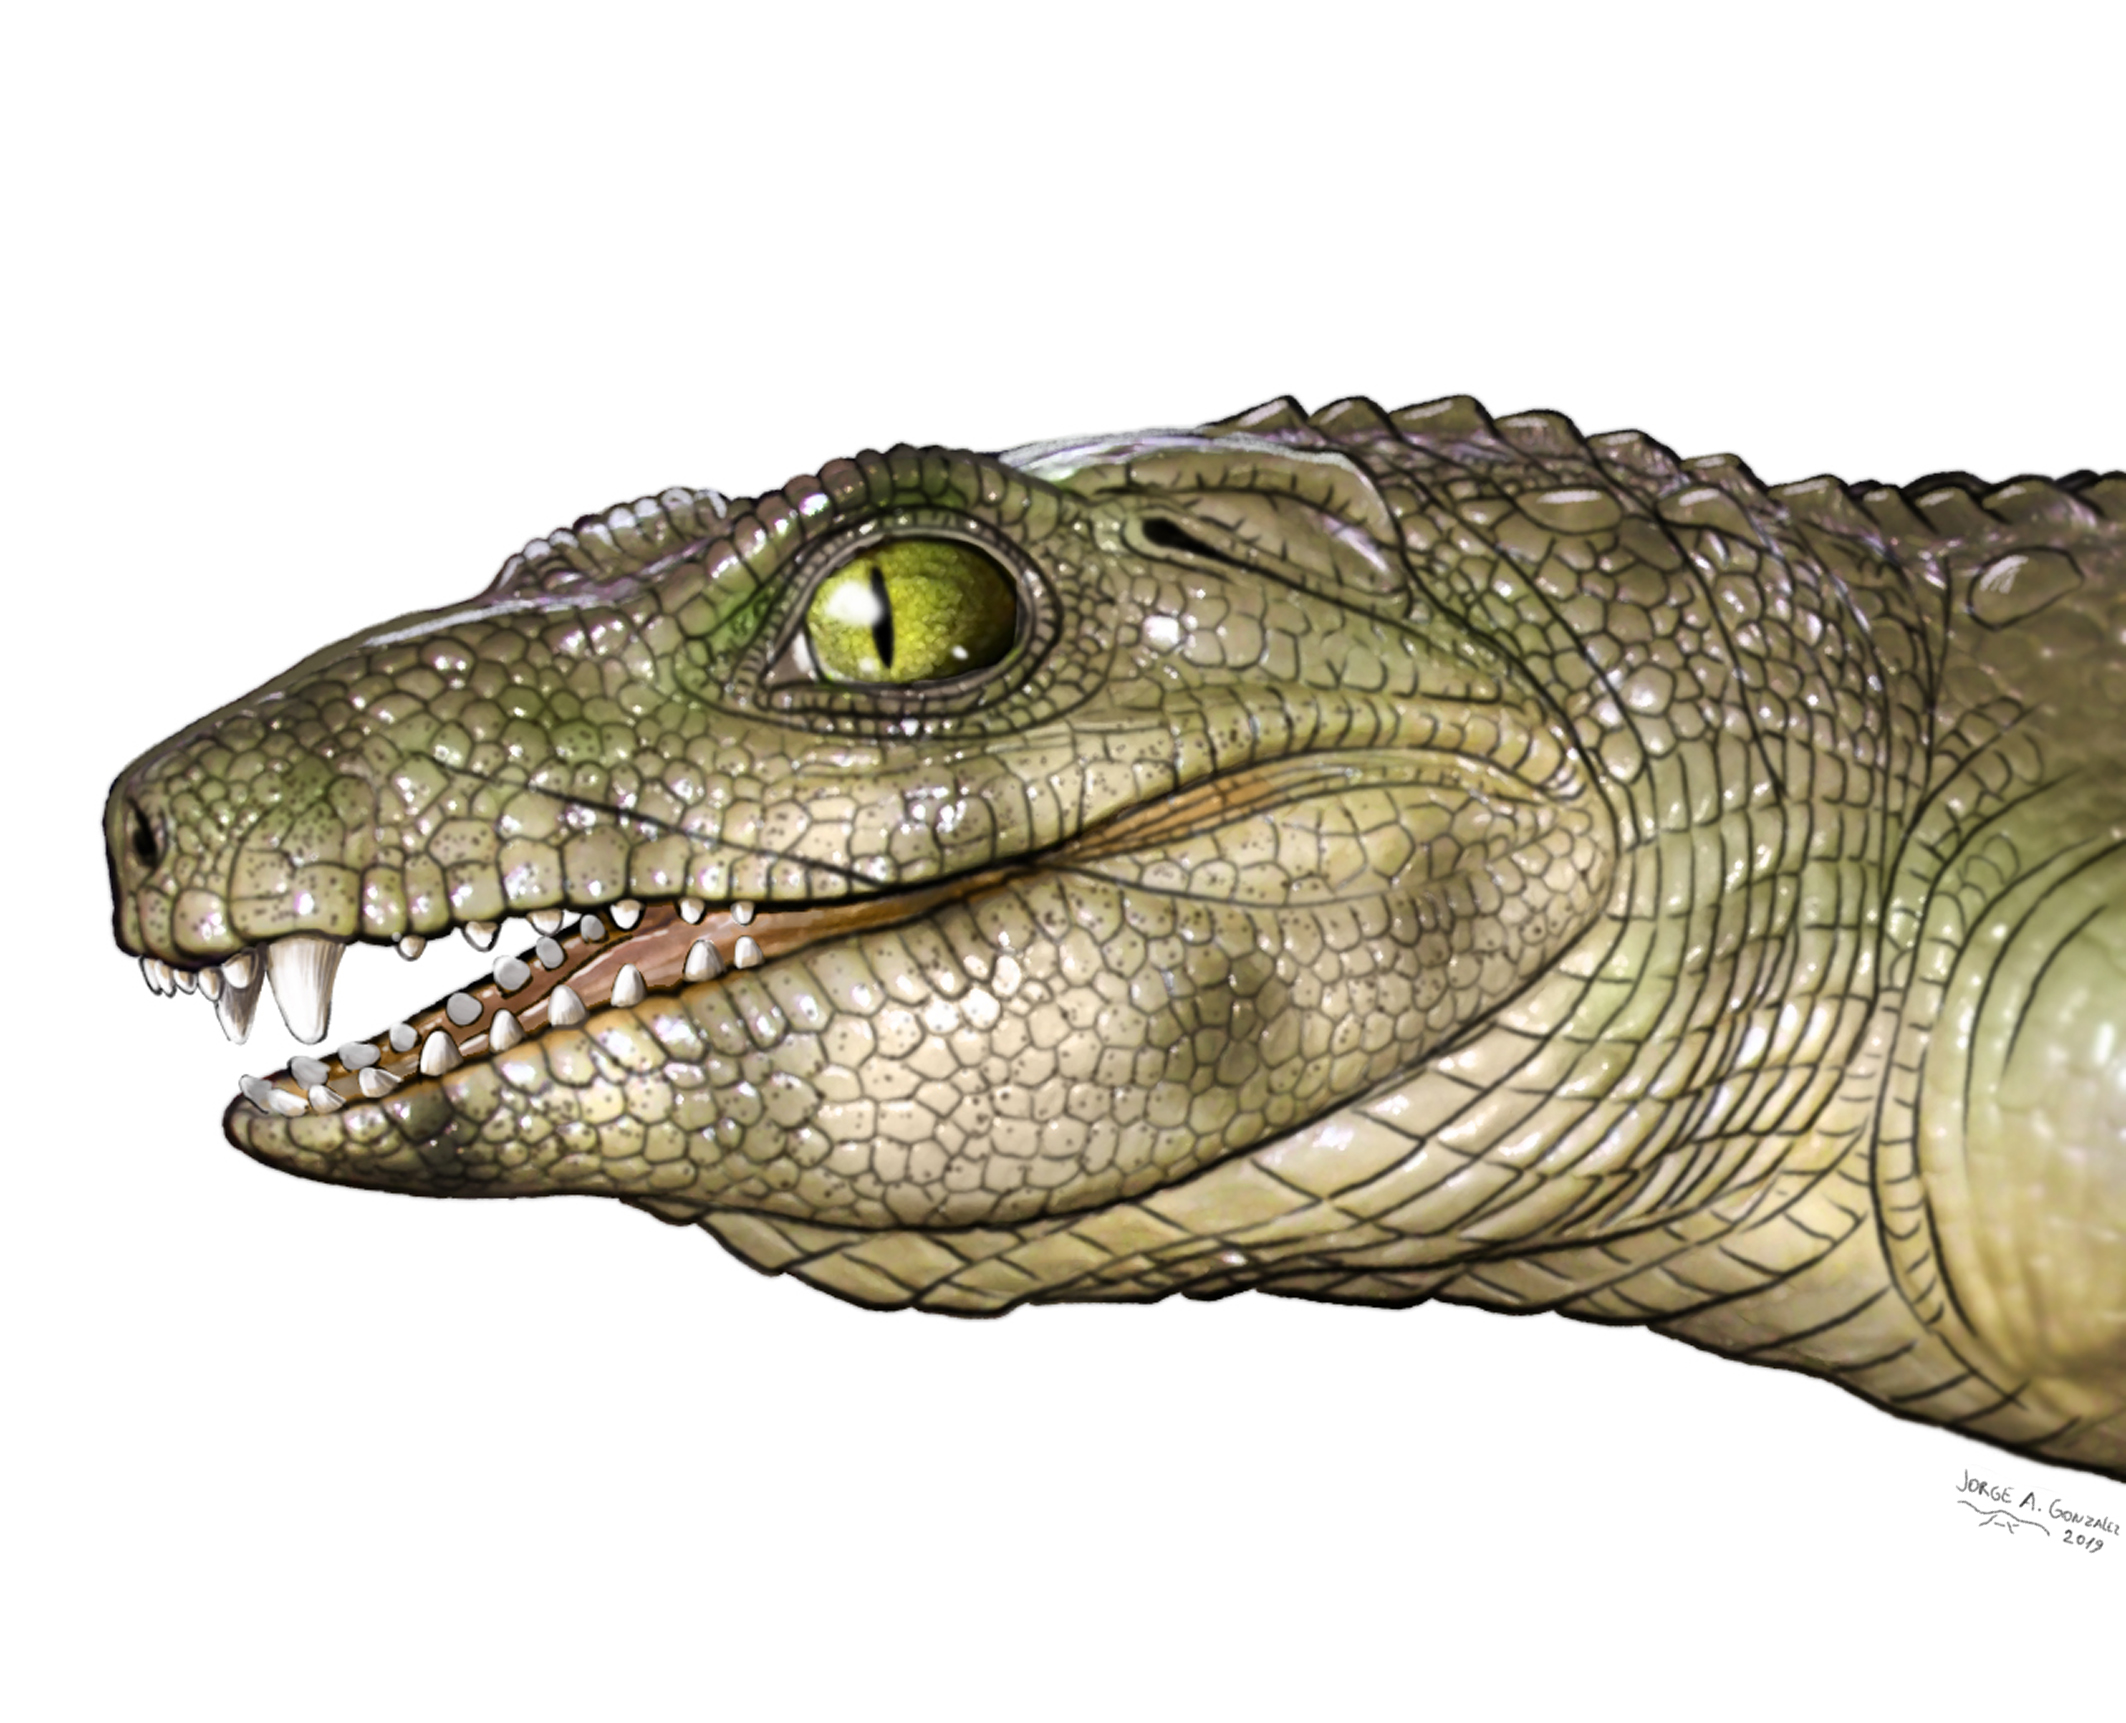 Notosuchus illustration